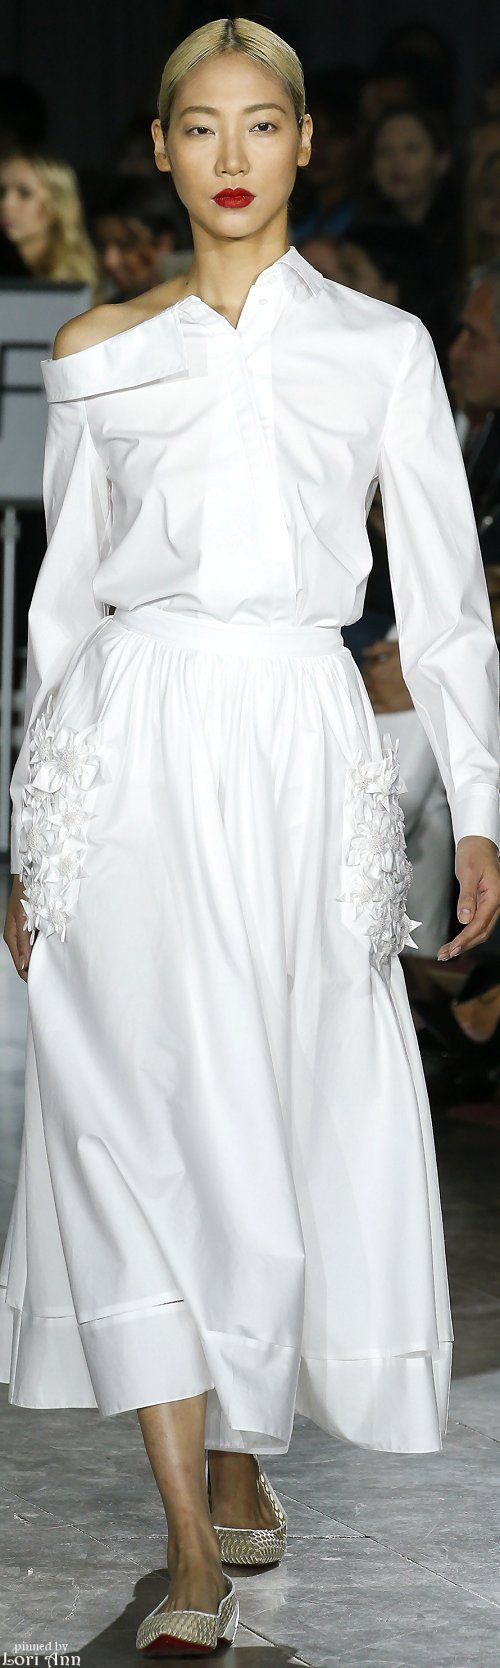 Trending Spring 2016 - Off One Shoulder White Button Up (image features: Zac Posen Spring 2016 RTW)